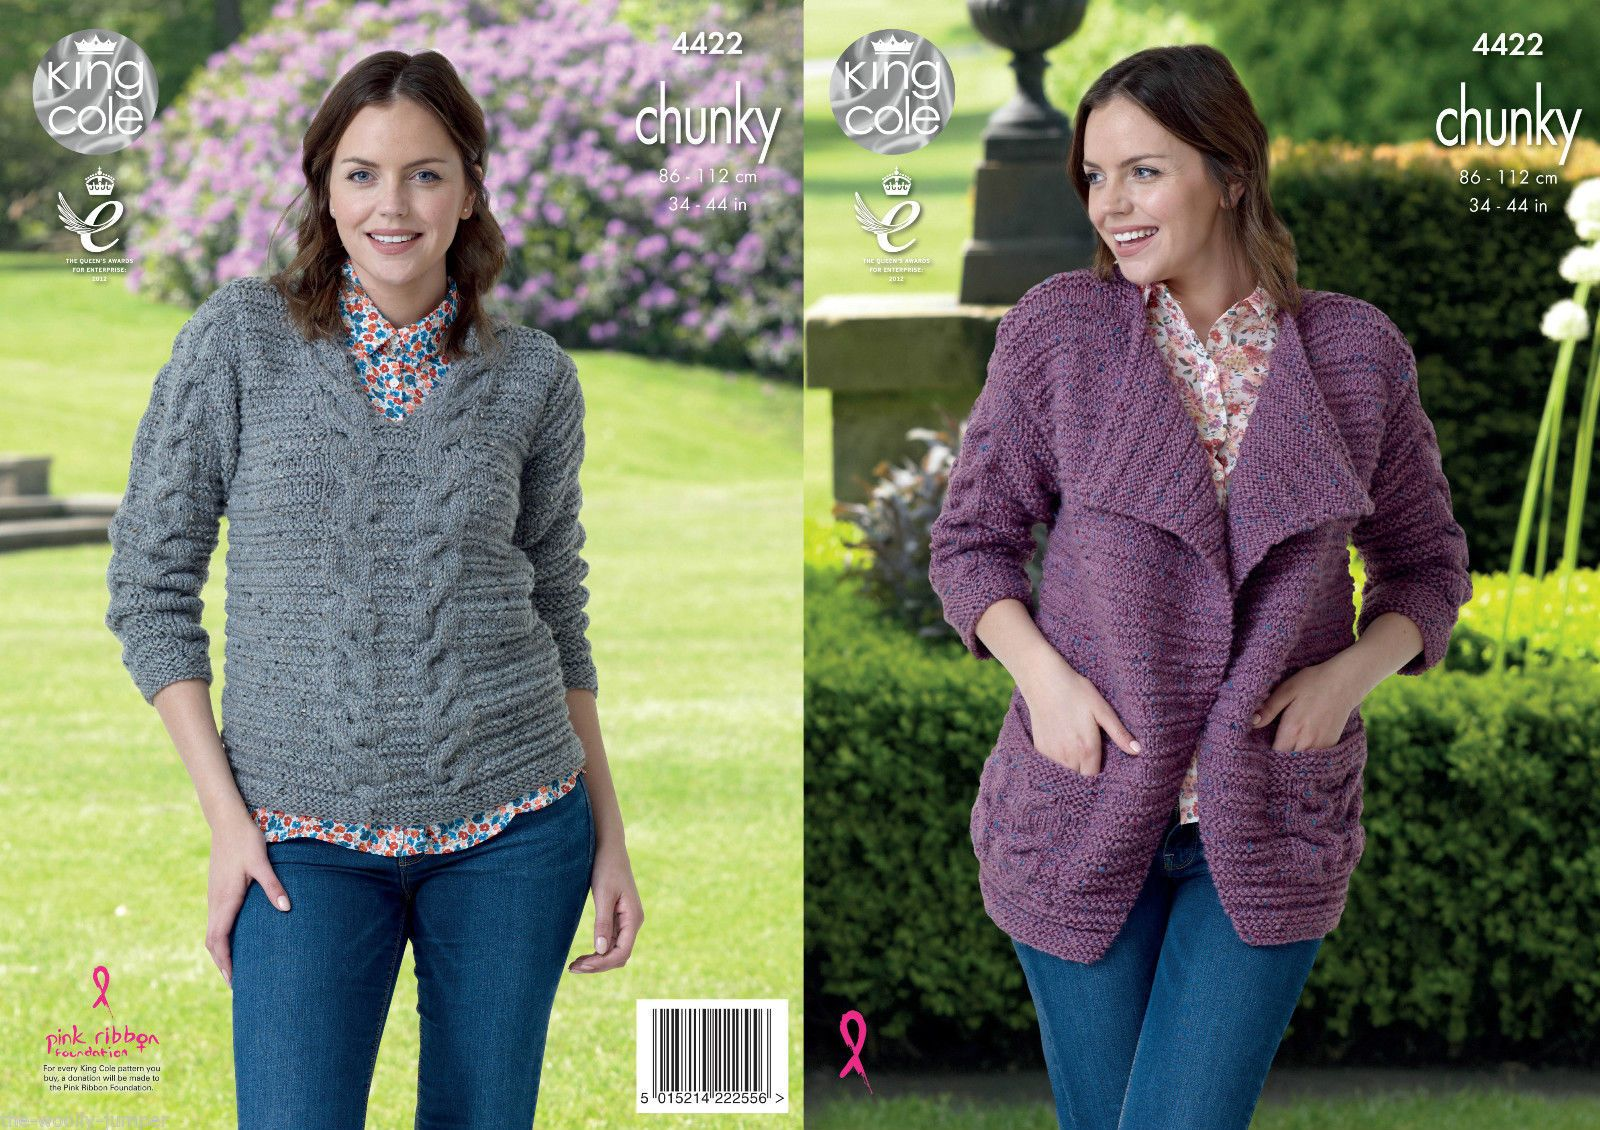 Tweed Jacket Knitting Pattern : 4422 - KING COLE CHUNKY TWEED JACKET & SWEATER KNITTING PATTERN - TO FIT ...